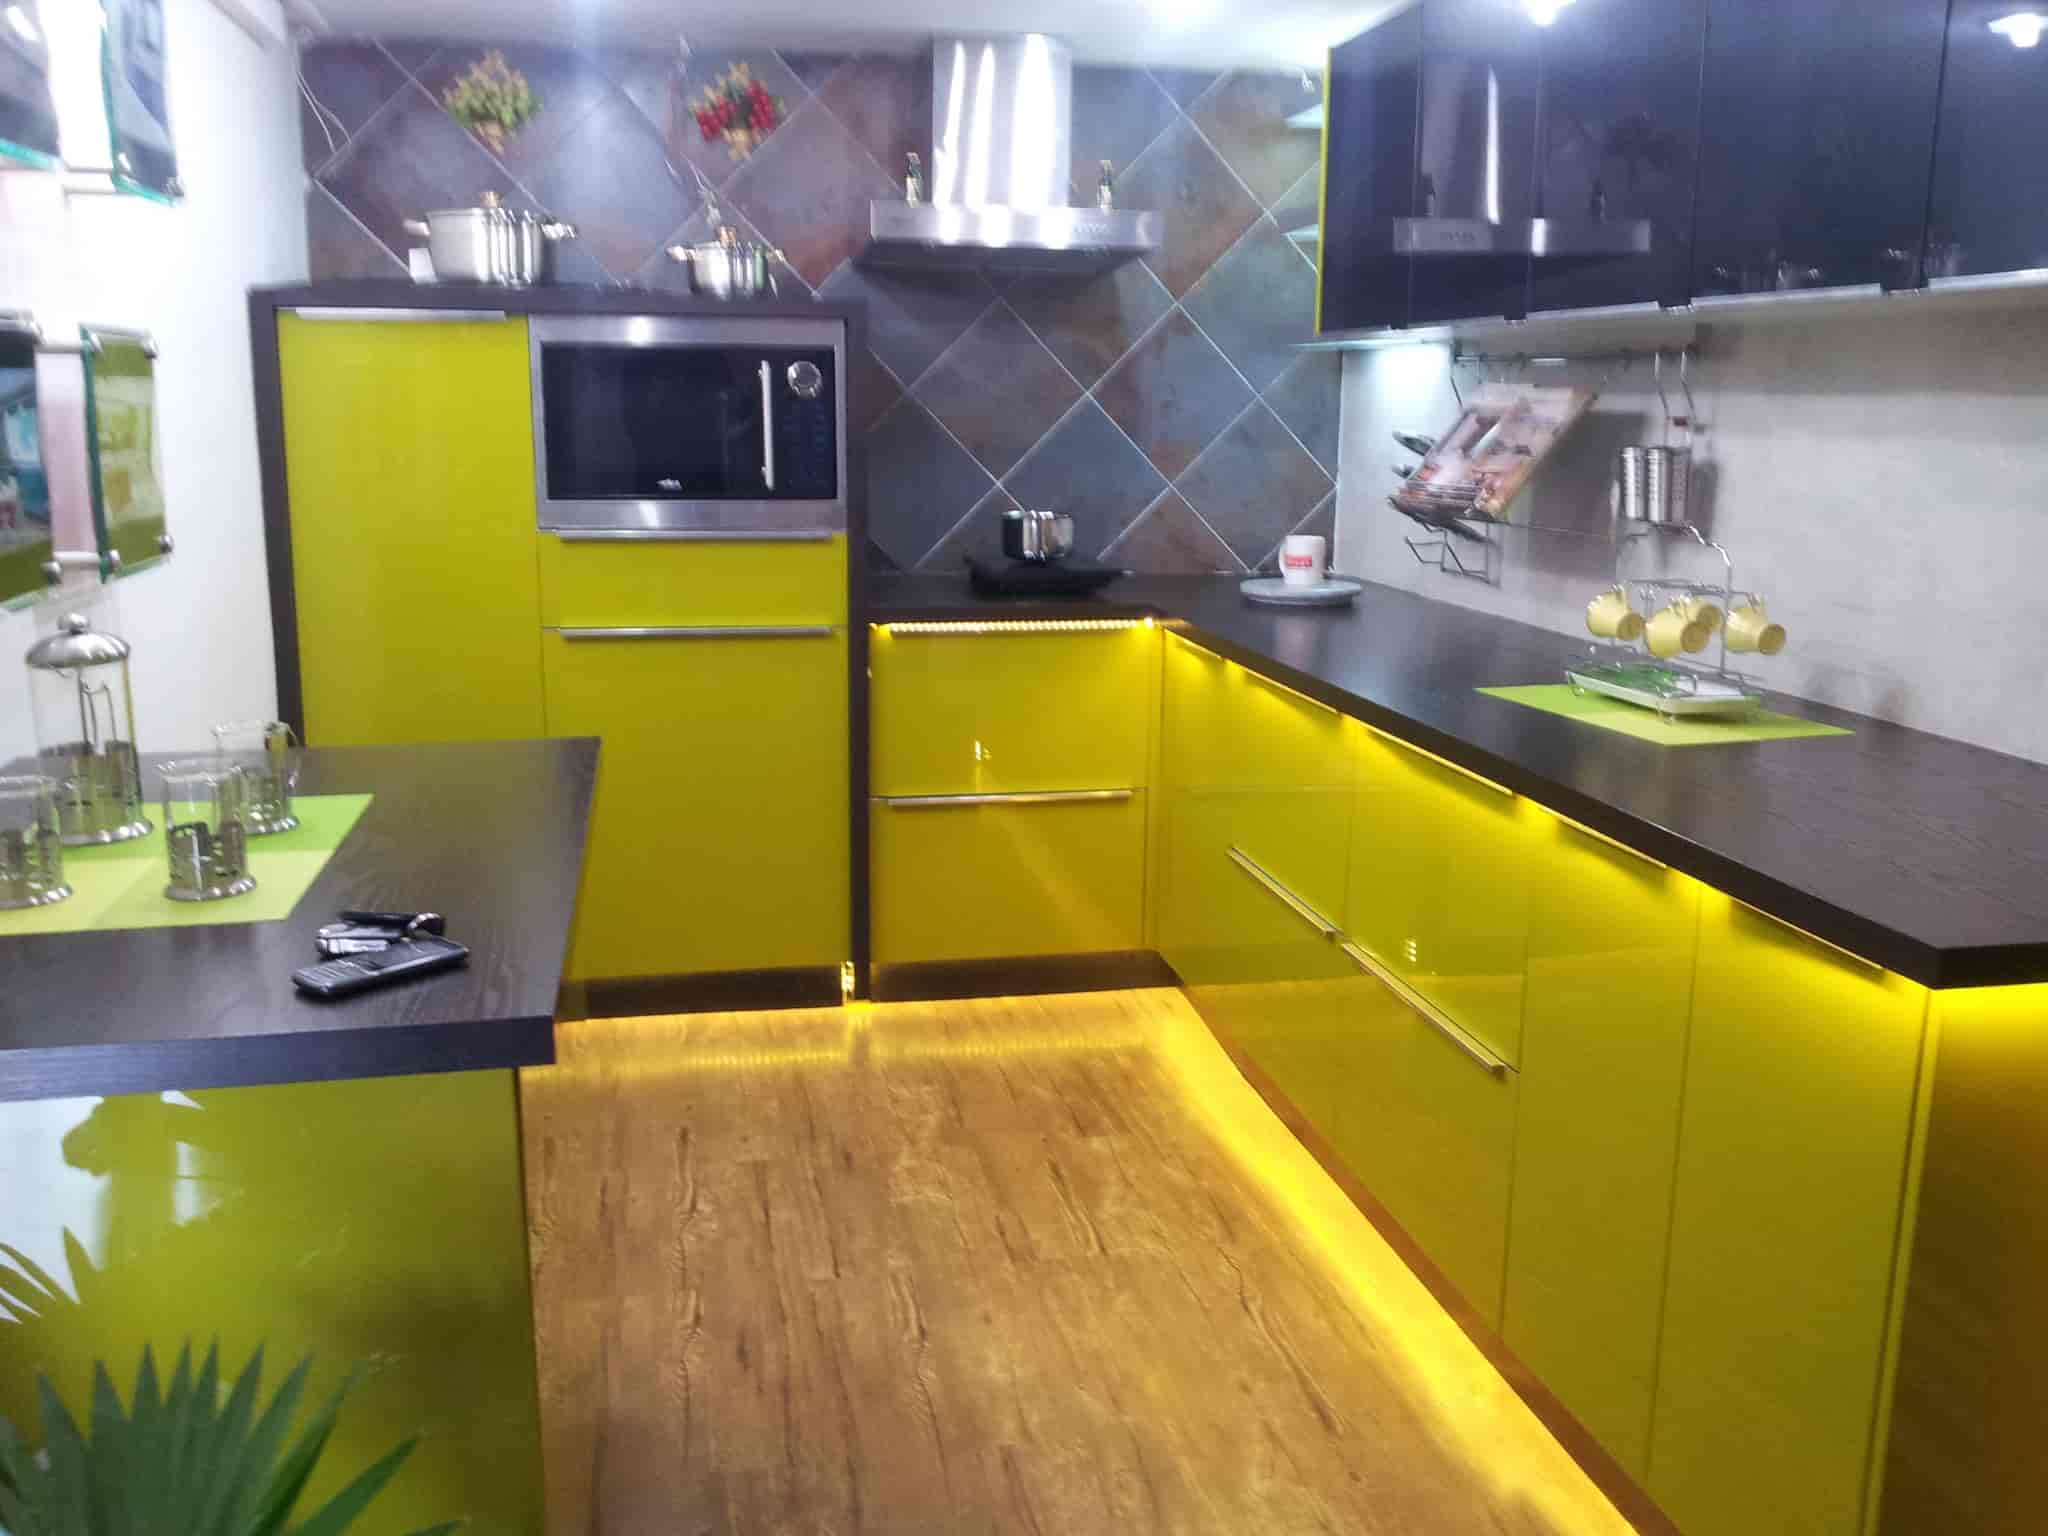 Kitchen Magic Photos, Hadapsar, Pune- Pictures & Images Gallery ...